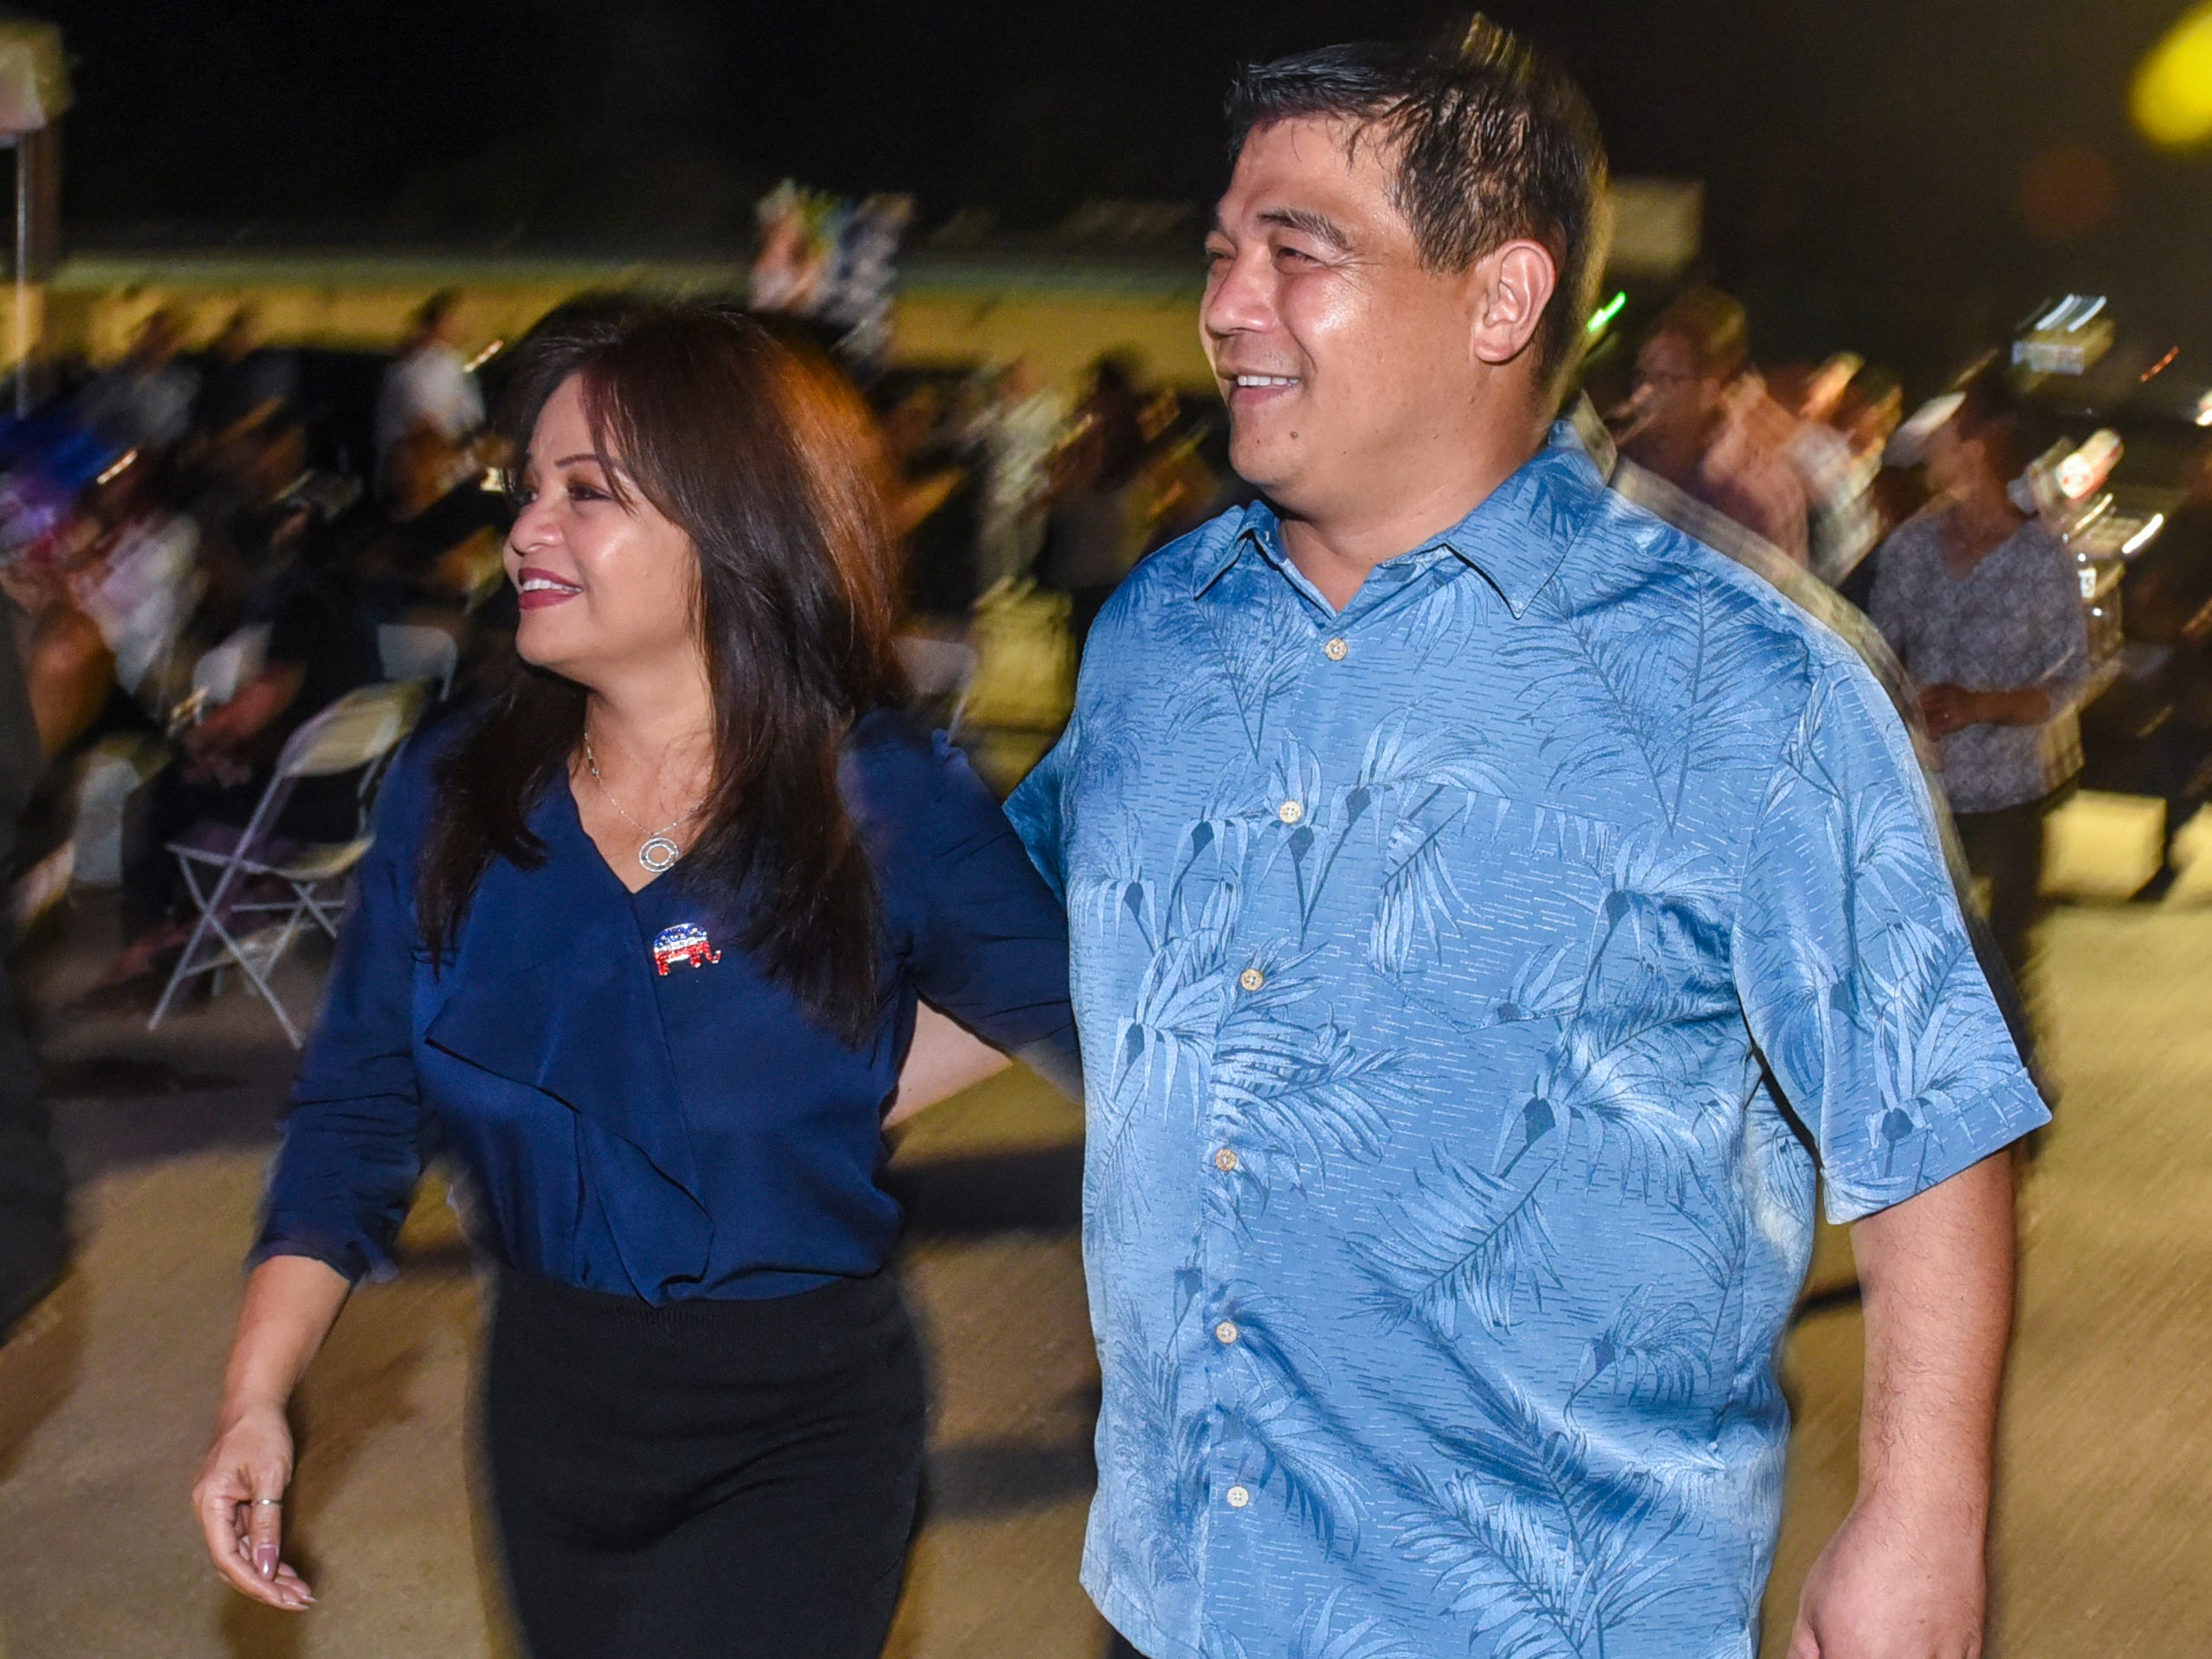 Republican candidate for lieutenant governor, Sen. Tony Ada, and his wife, Annette, prepare to address supporters at the Republican gubernatorial campaign headquarters in Tamuning during the early morning hours of Wednesday, Nov. 7, 2018.